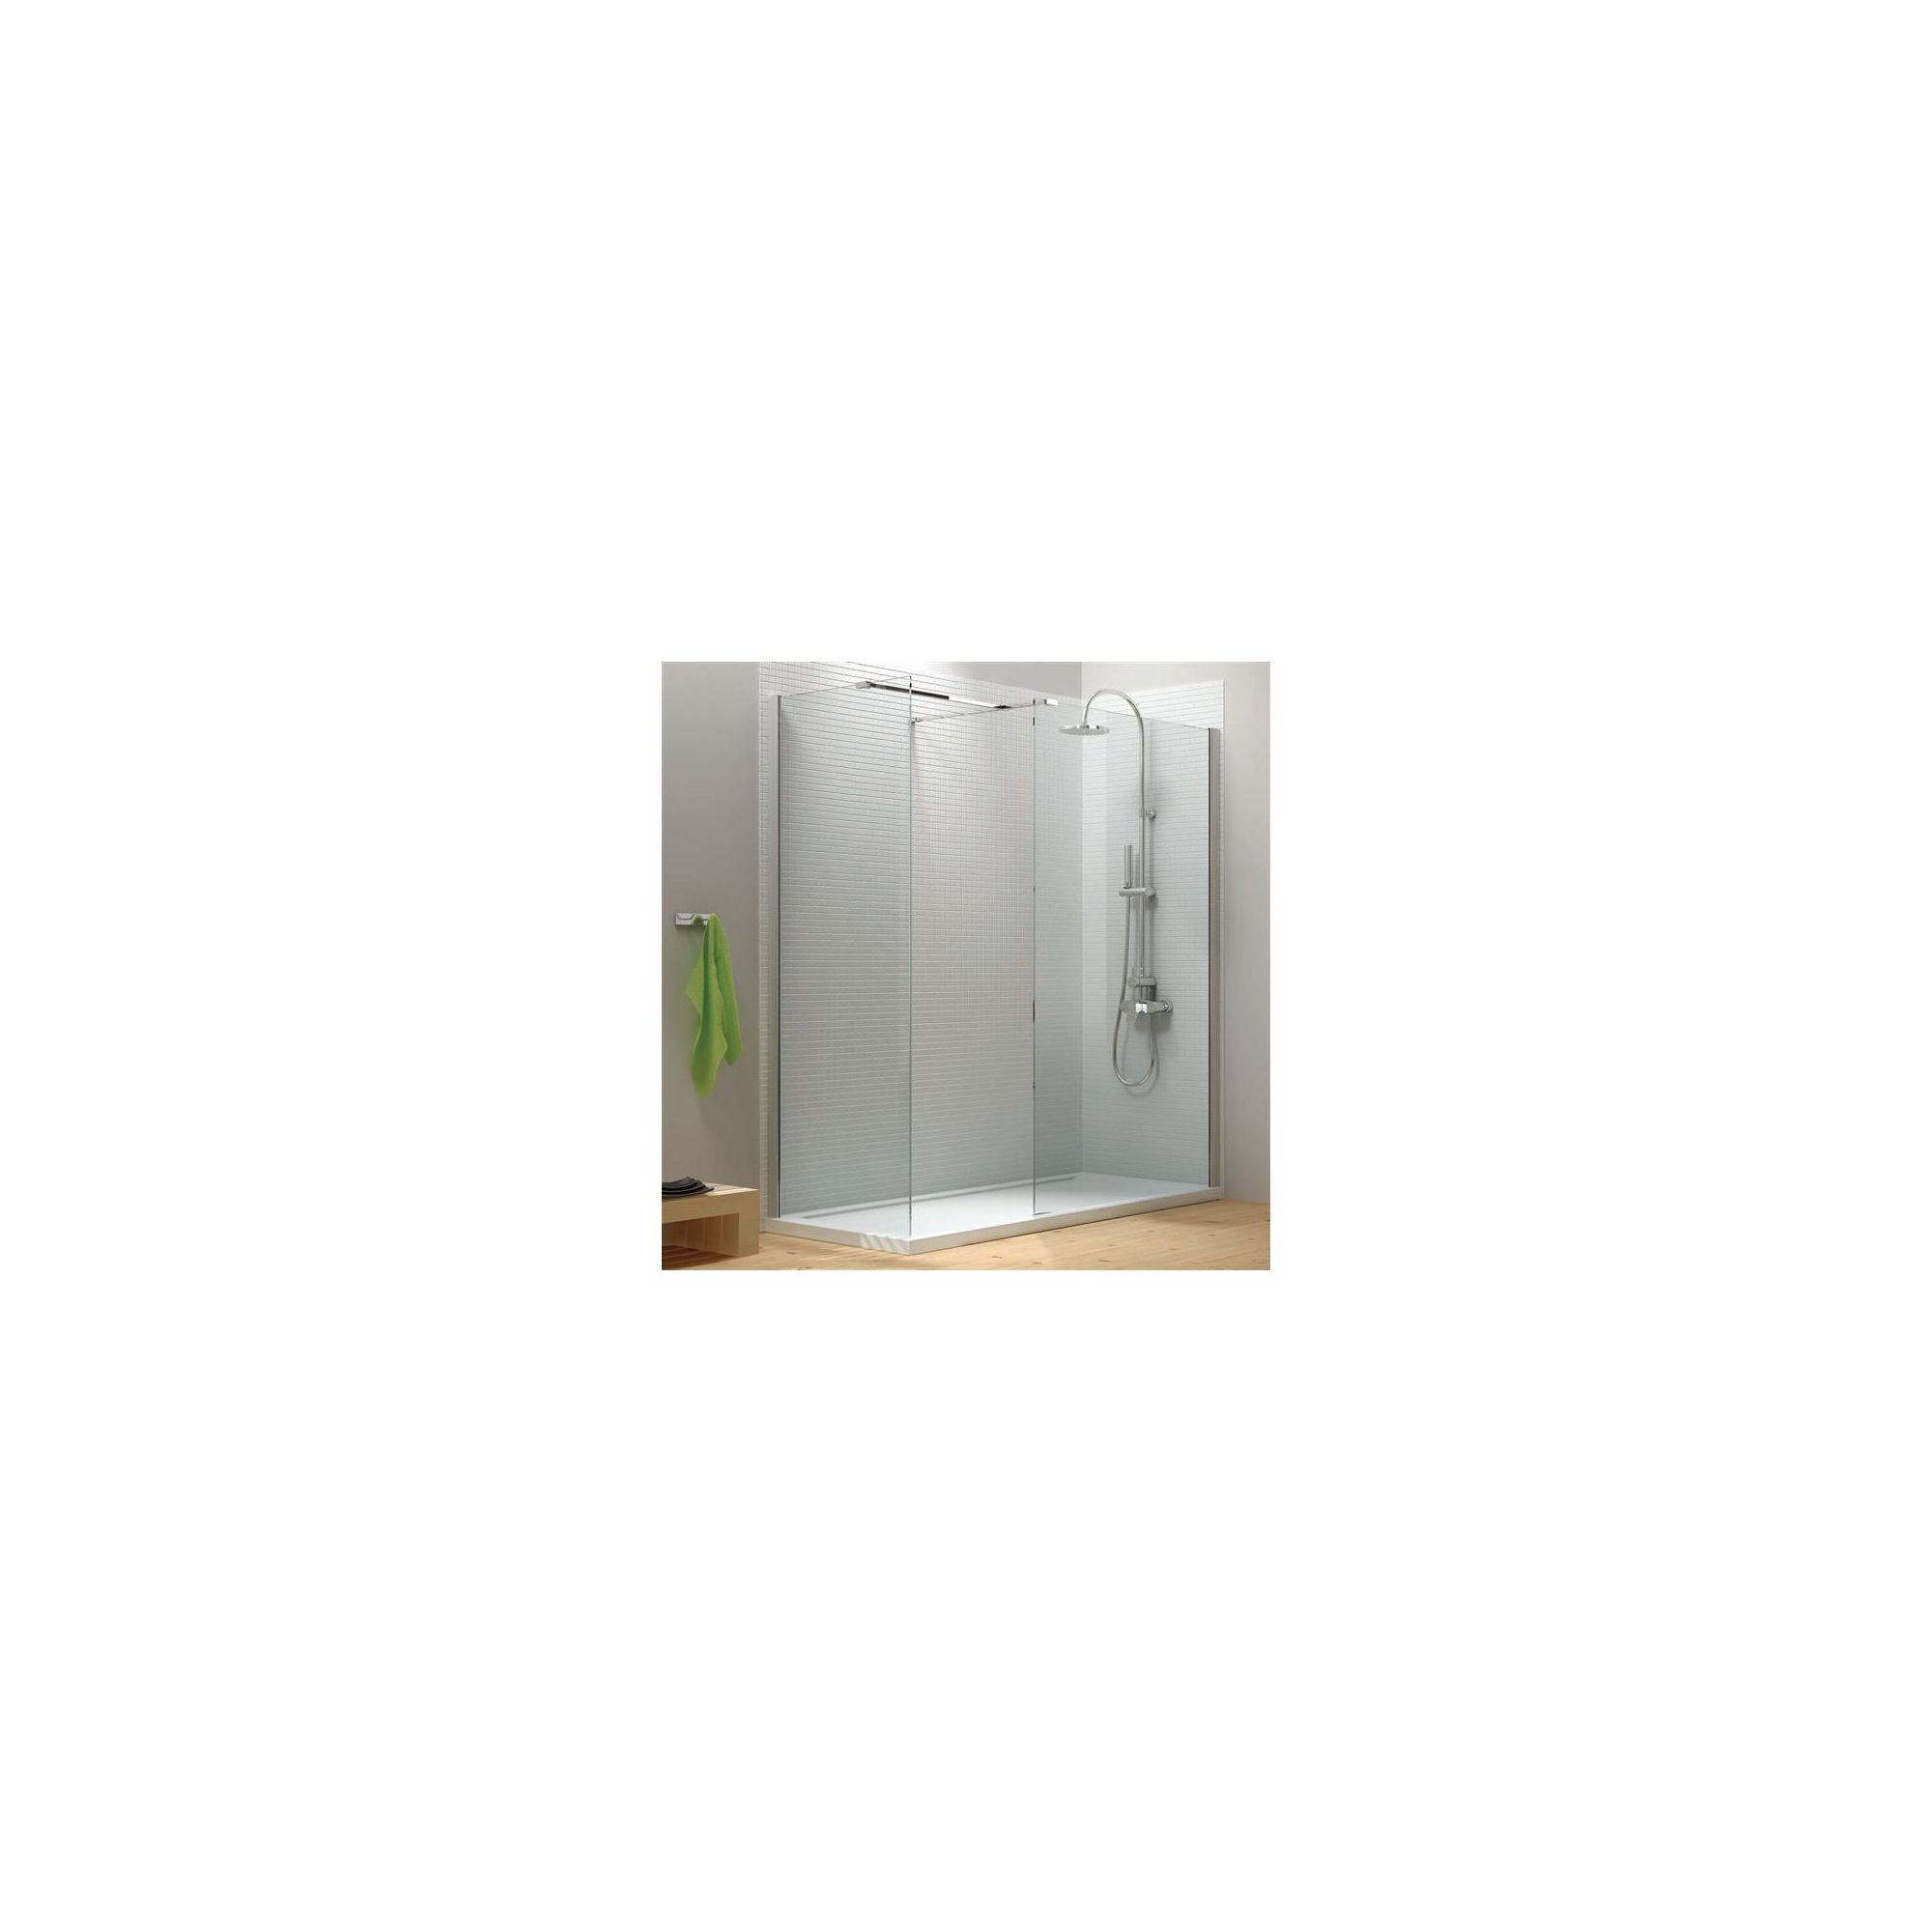 Merlyn Vivid Eight Walk-In Shower Enclosure, 1600mm x 800mm, Low Profile Tray, 8mm Glass at Tesco Direct